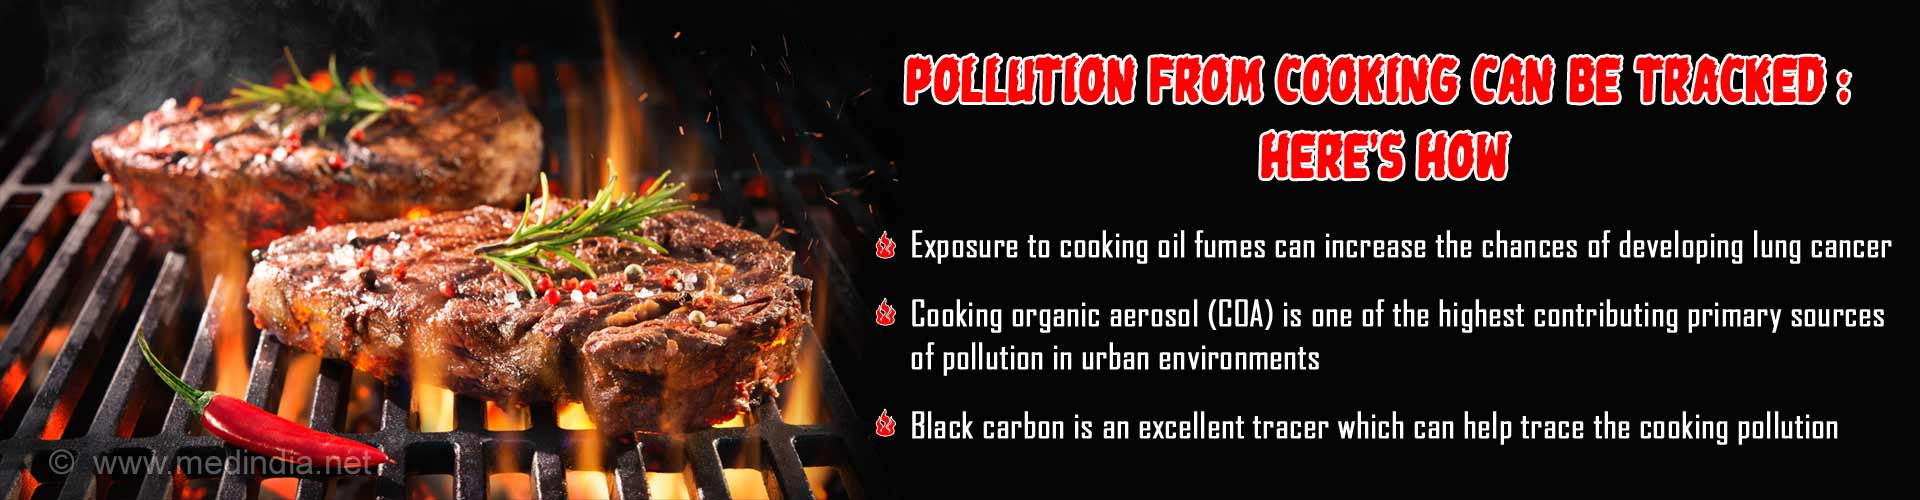 Cooking Based Pollution Can Be Traced Using a New Method